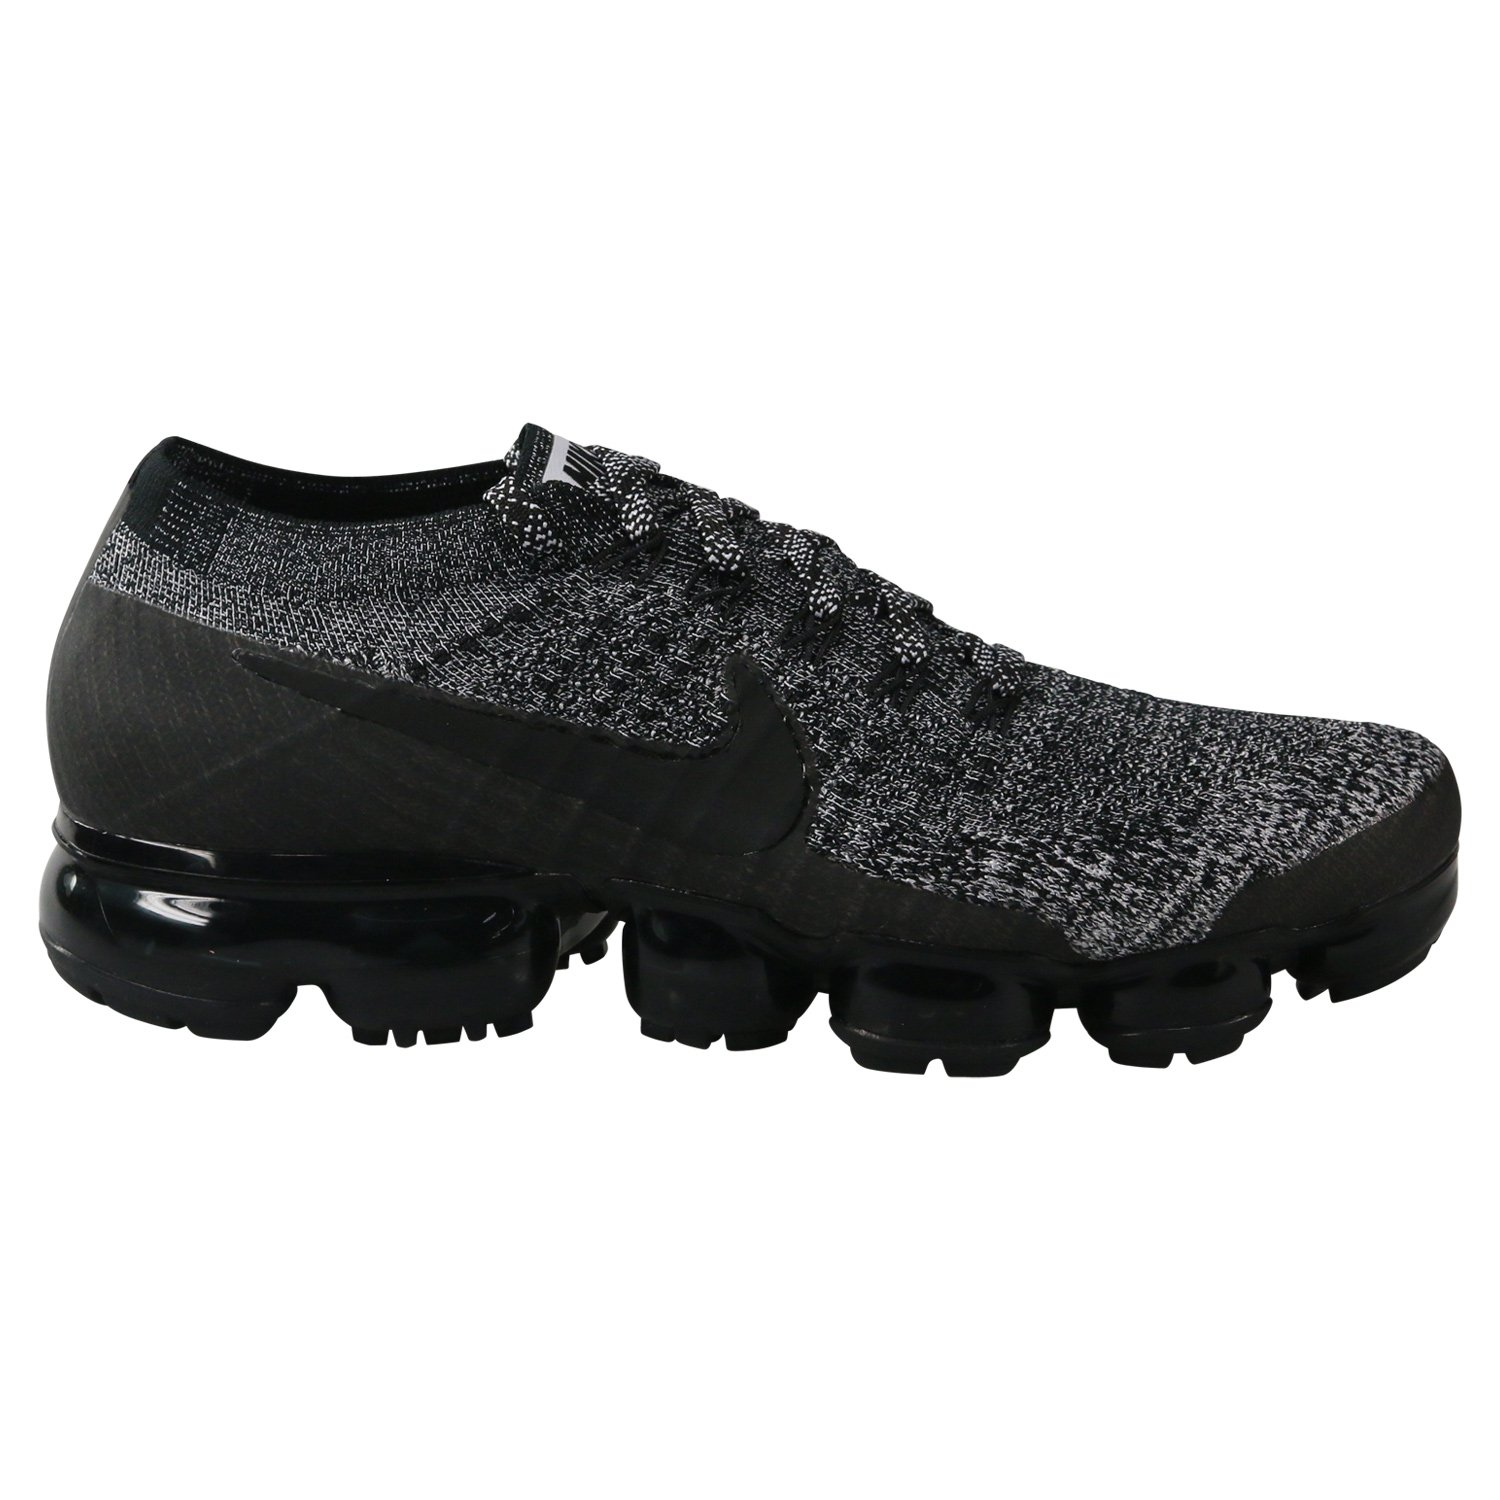 a036d55fc Galleon - NIKE Men s Air Vapormax Flyknit Running Shoe  Black Black-White-Racer Blue 11.5